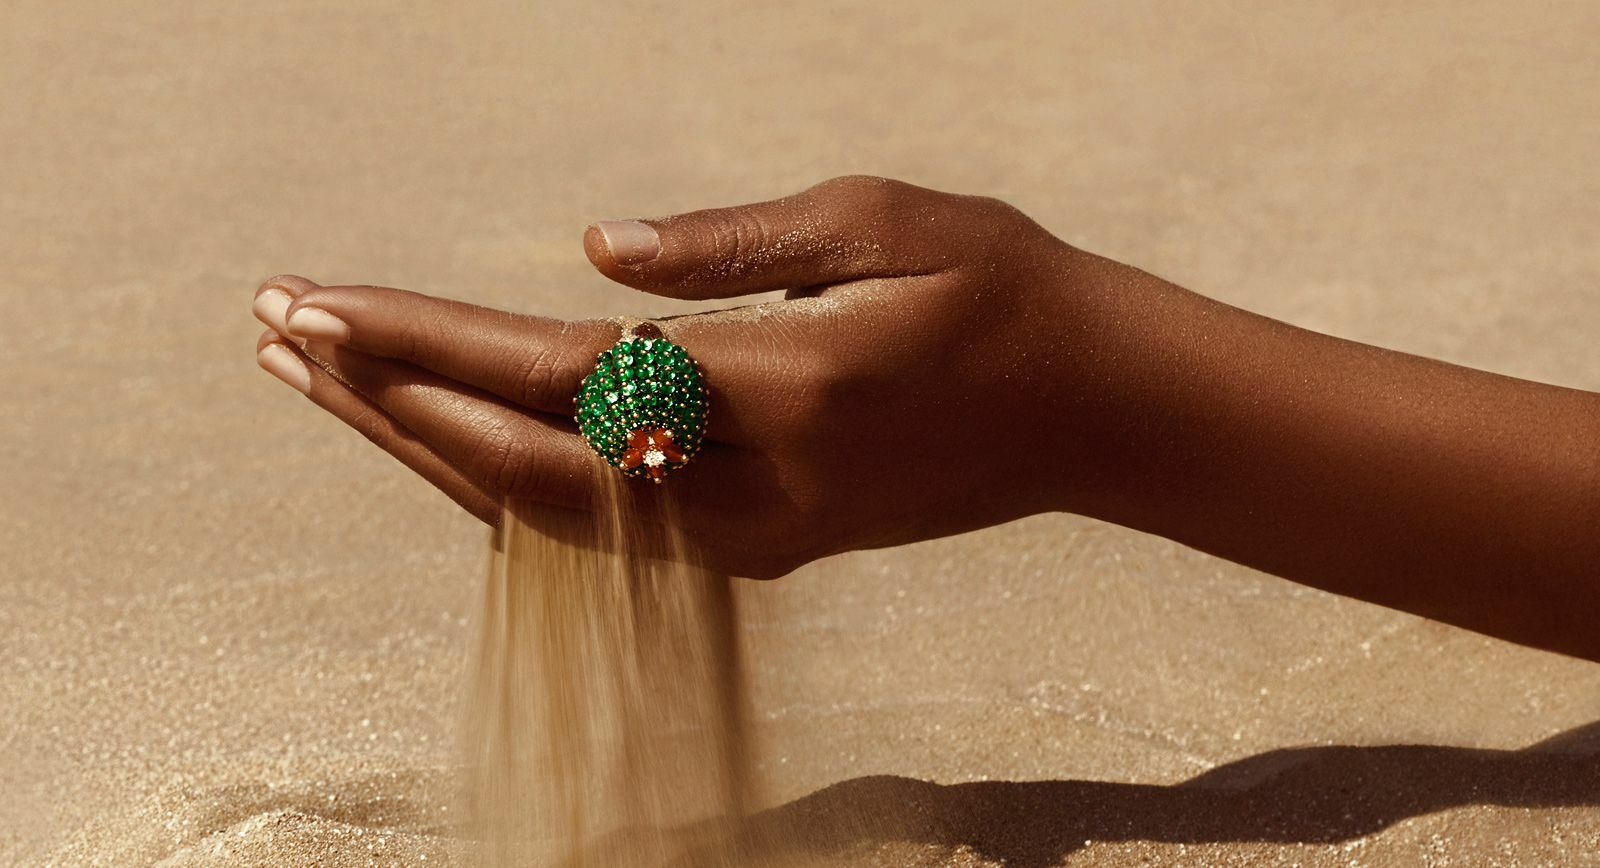 Cactus de Cartier jewellery